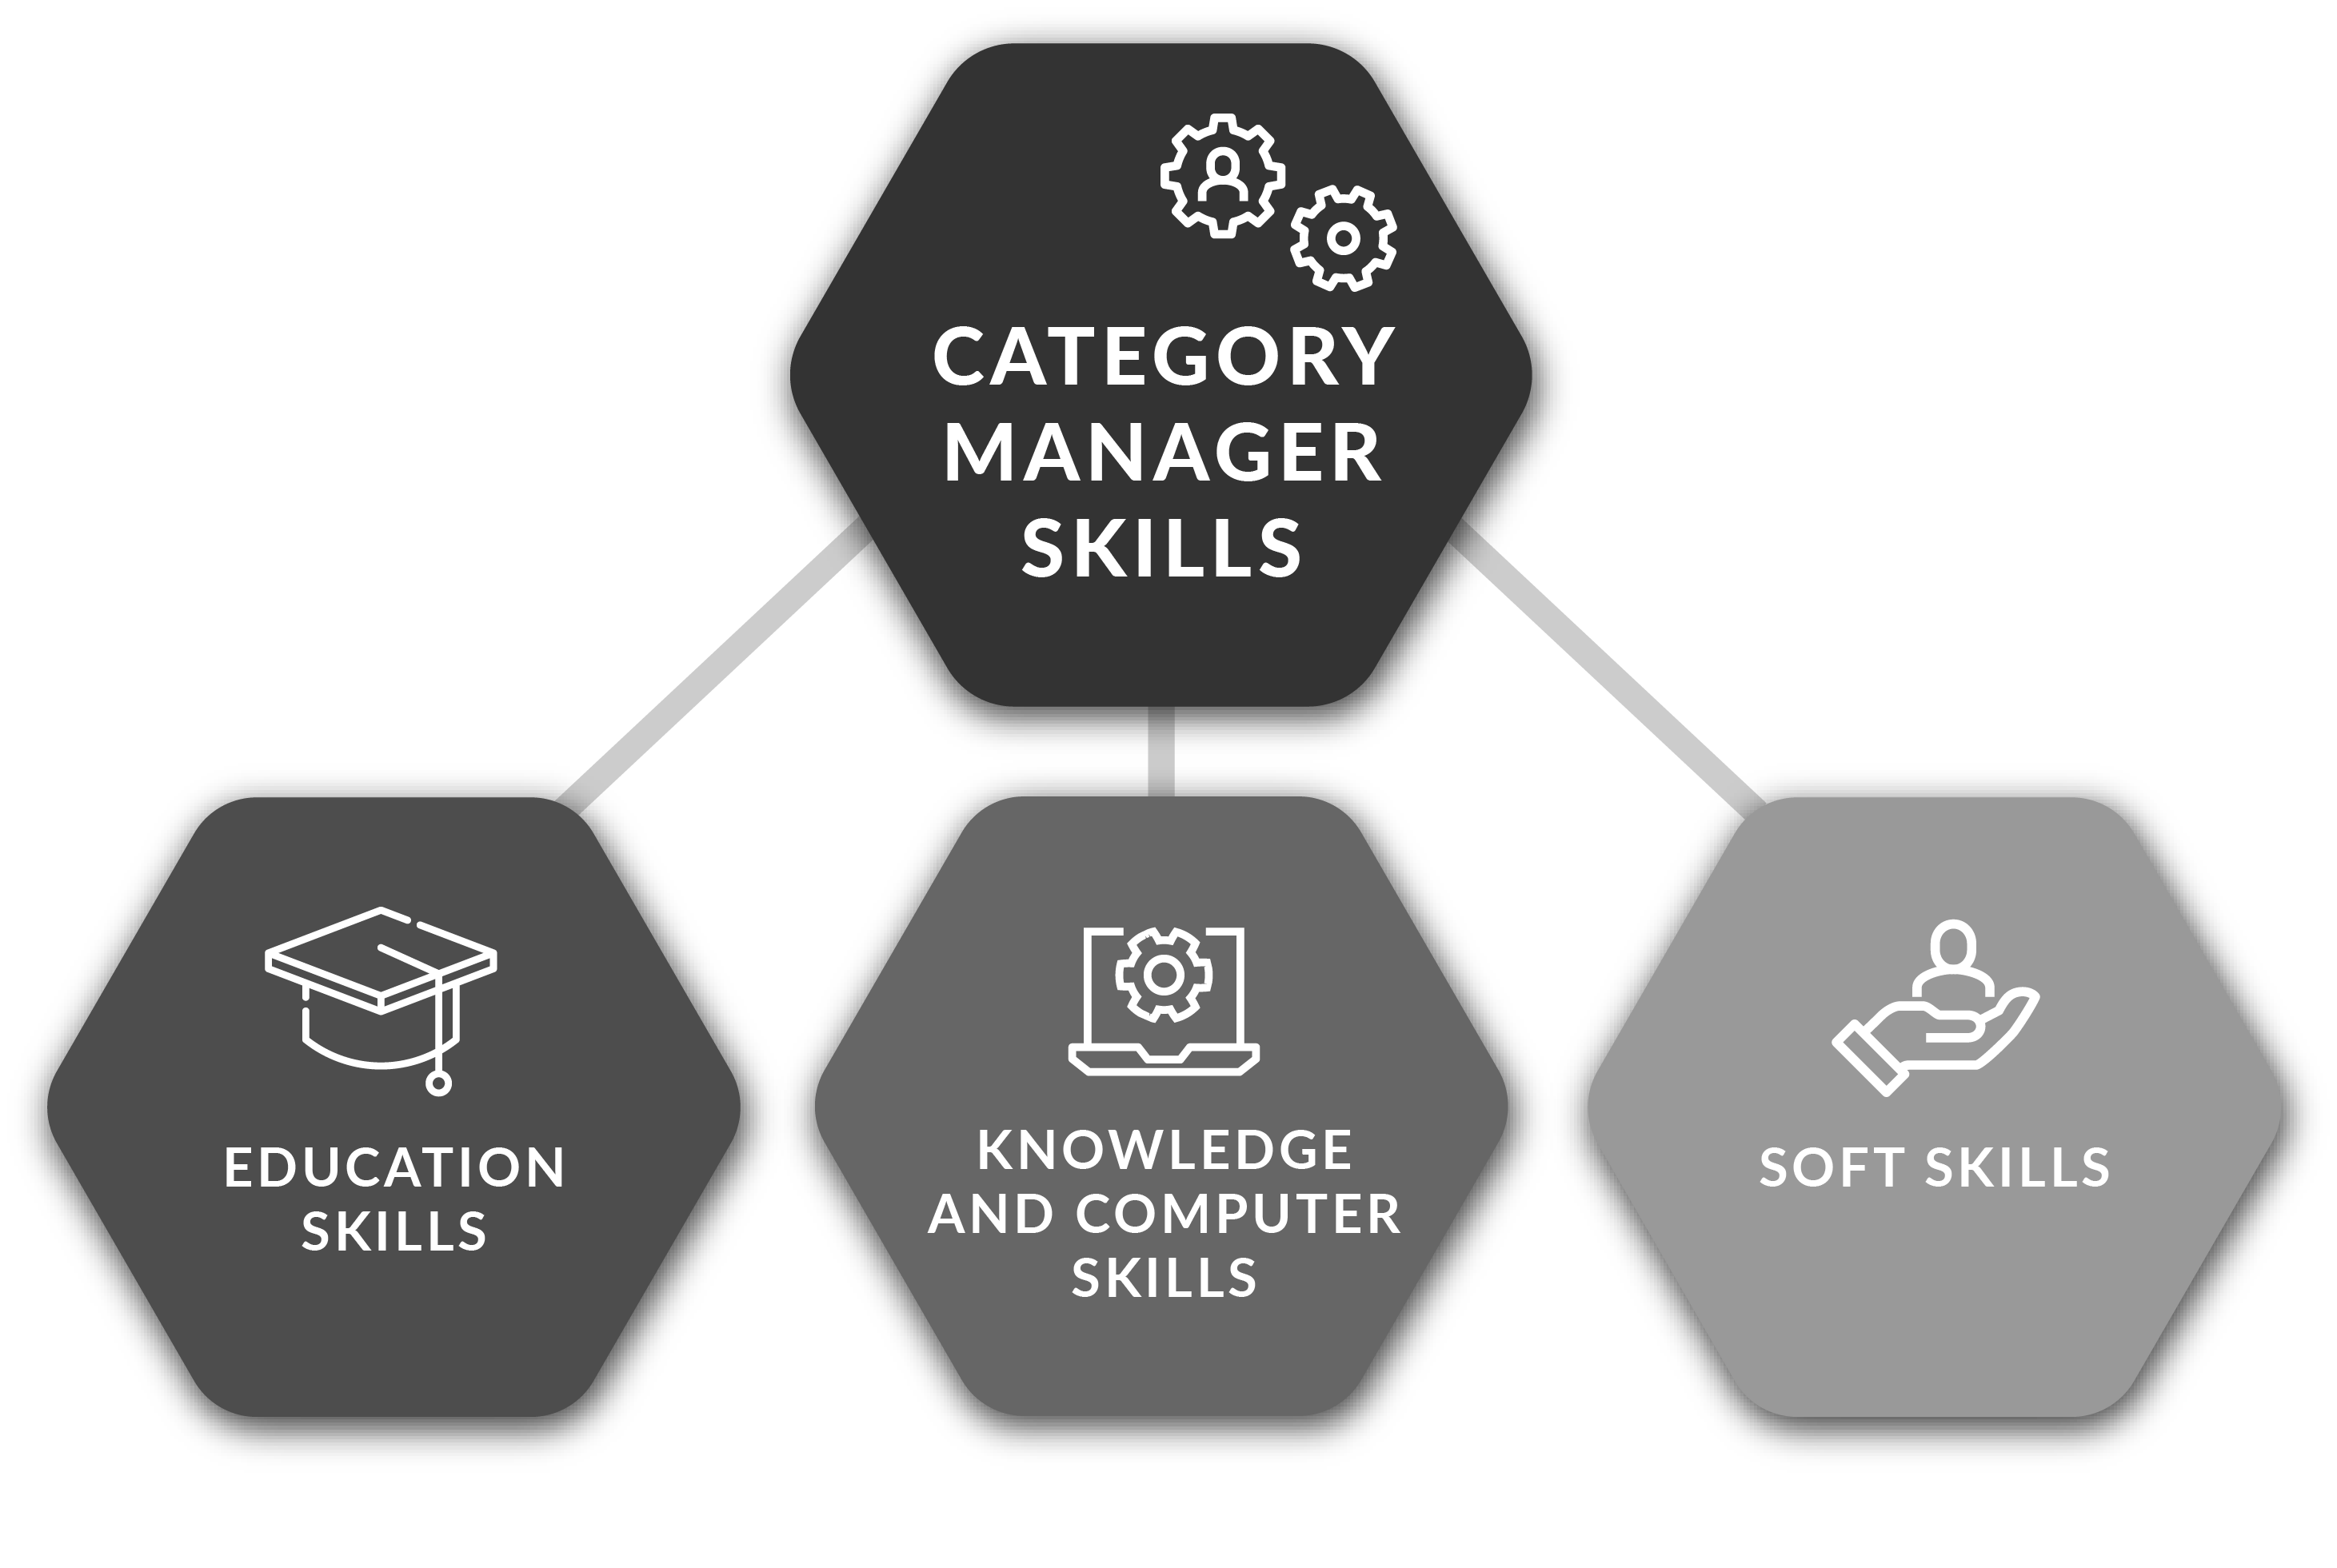 Category+Manager+Skills